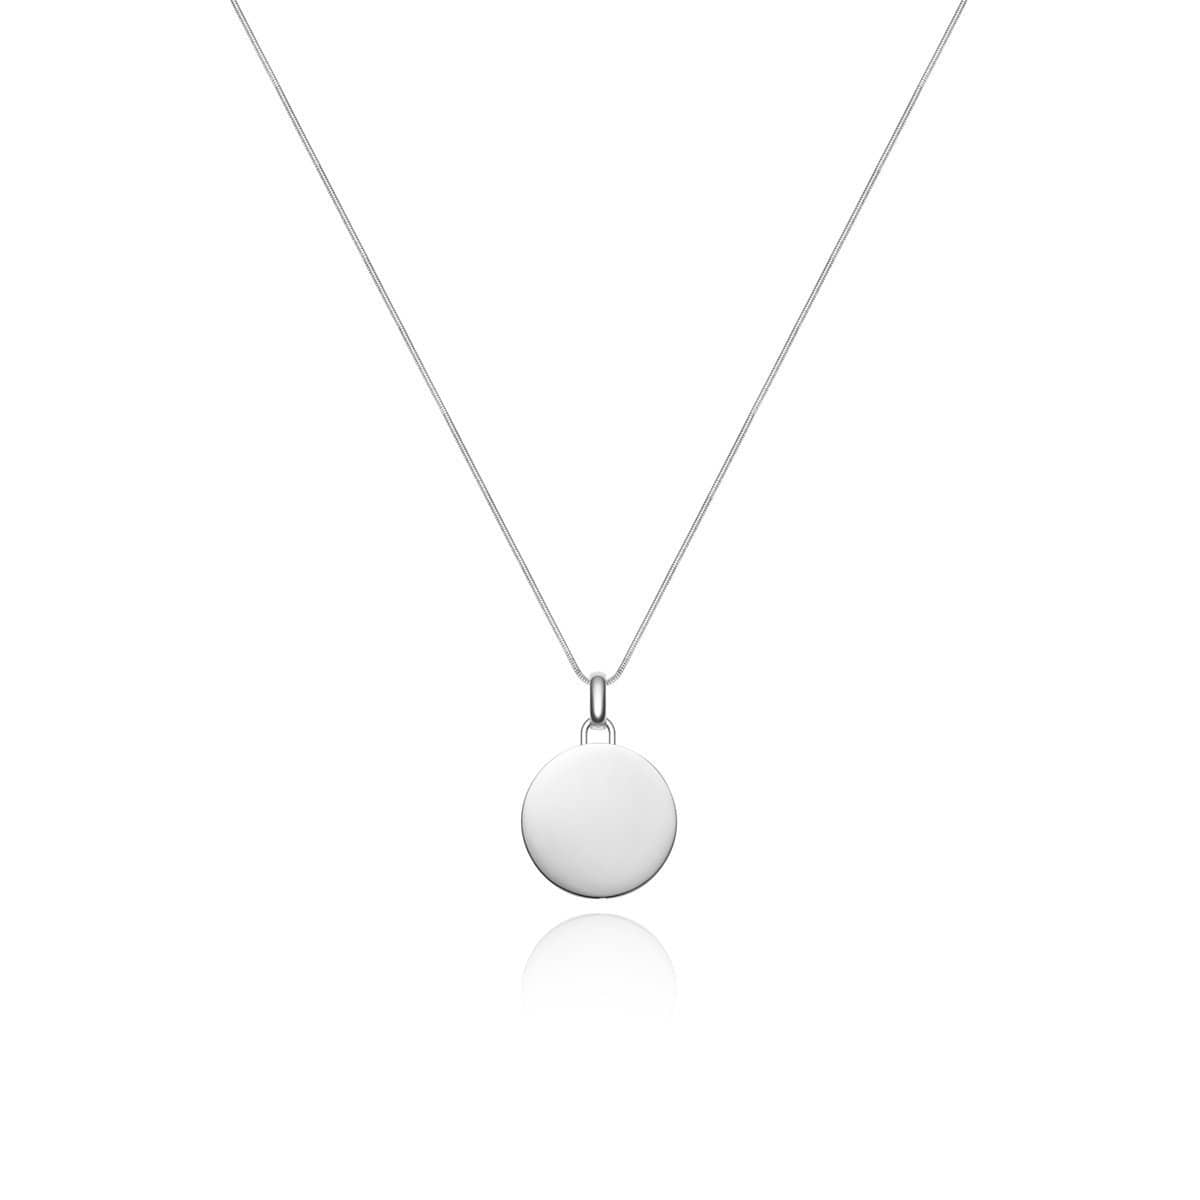 Luna Large Charm Necklace (Silver)